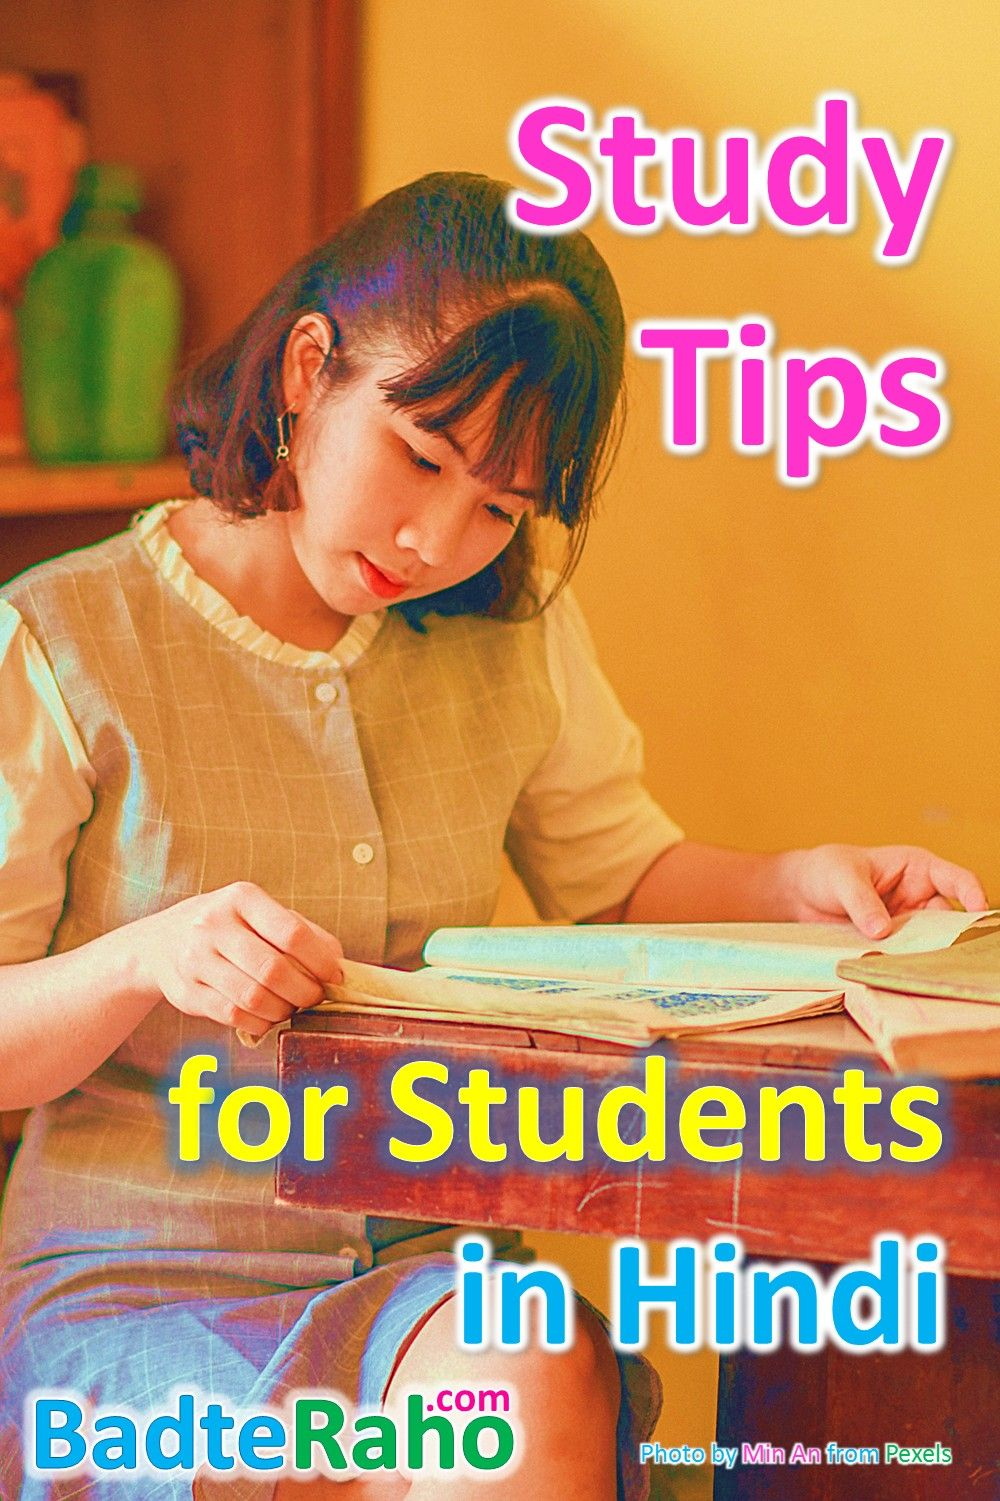 Study-tips-for-Students-pinterest